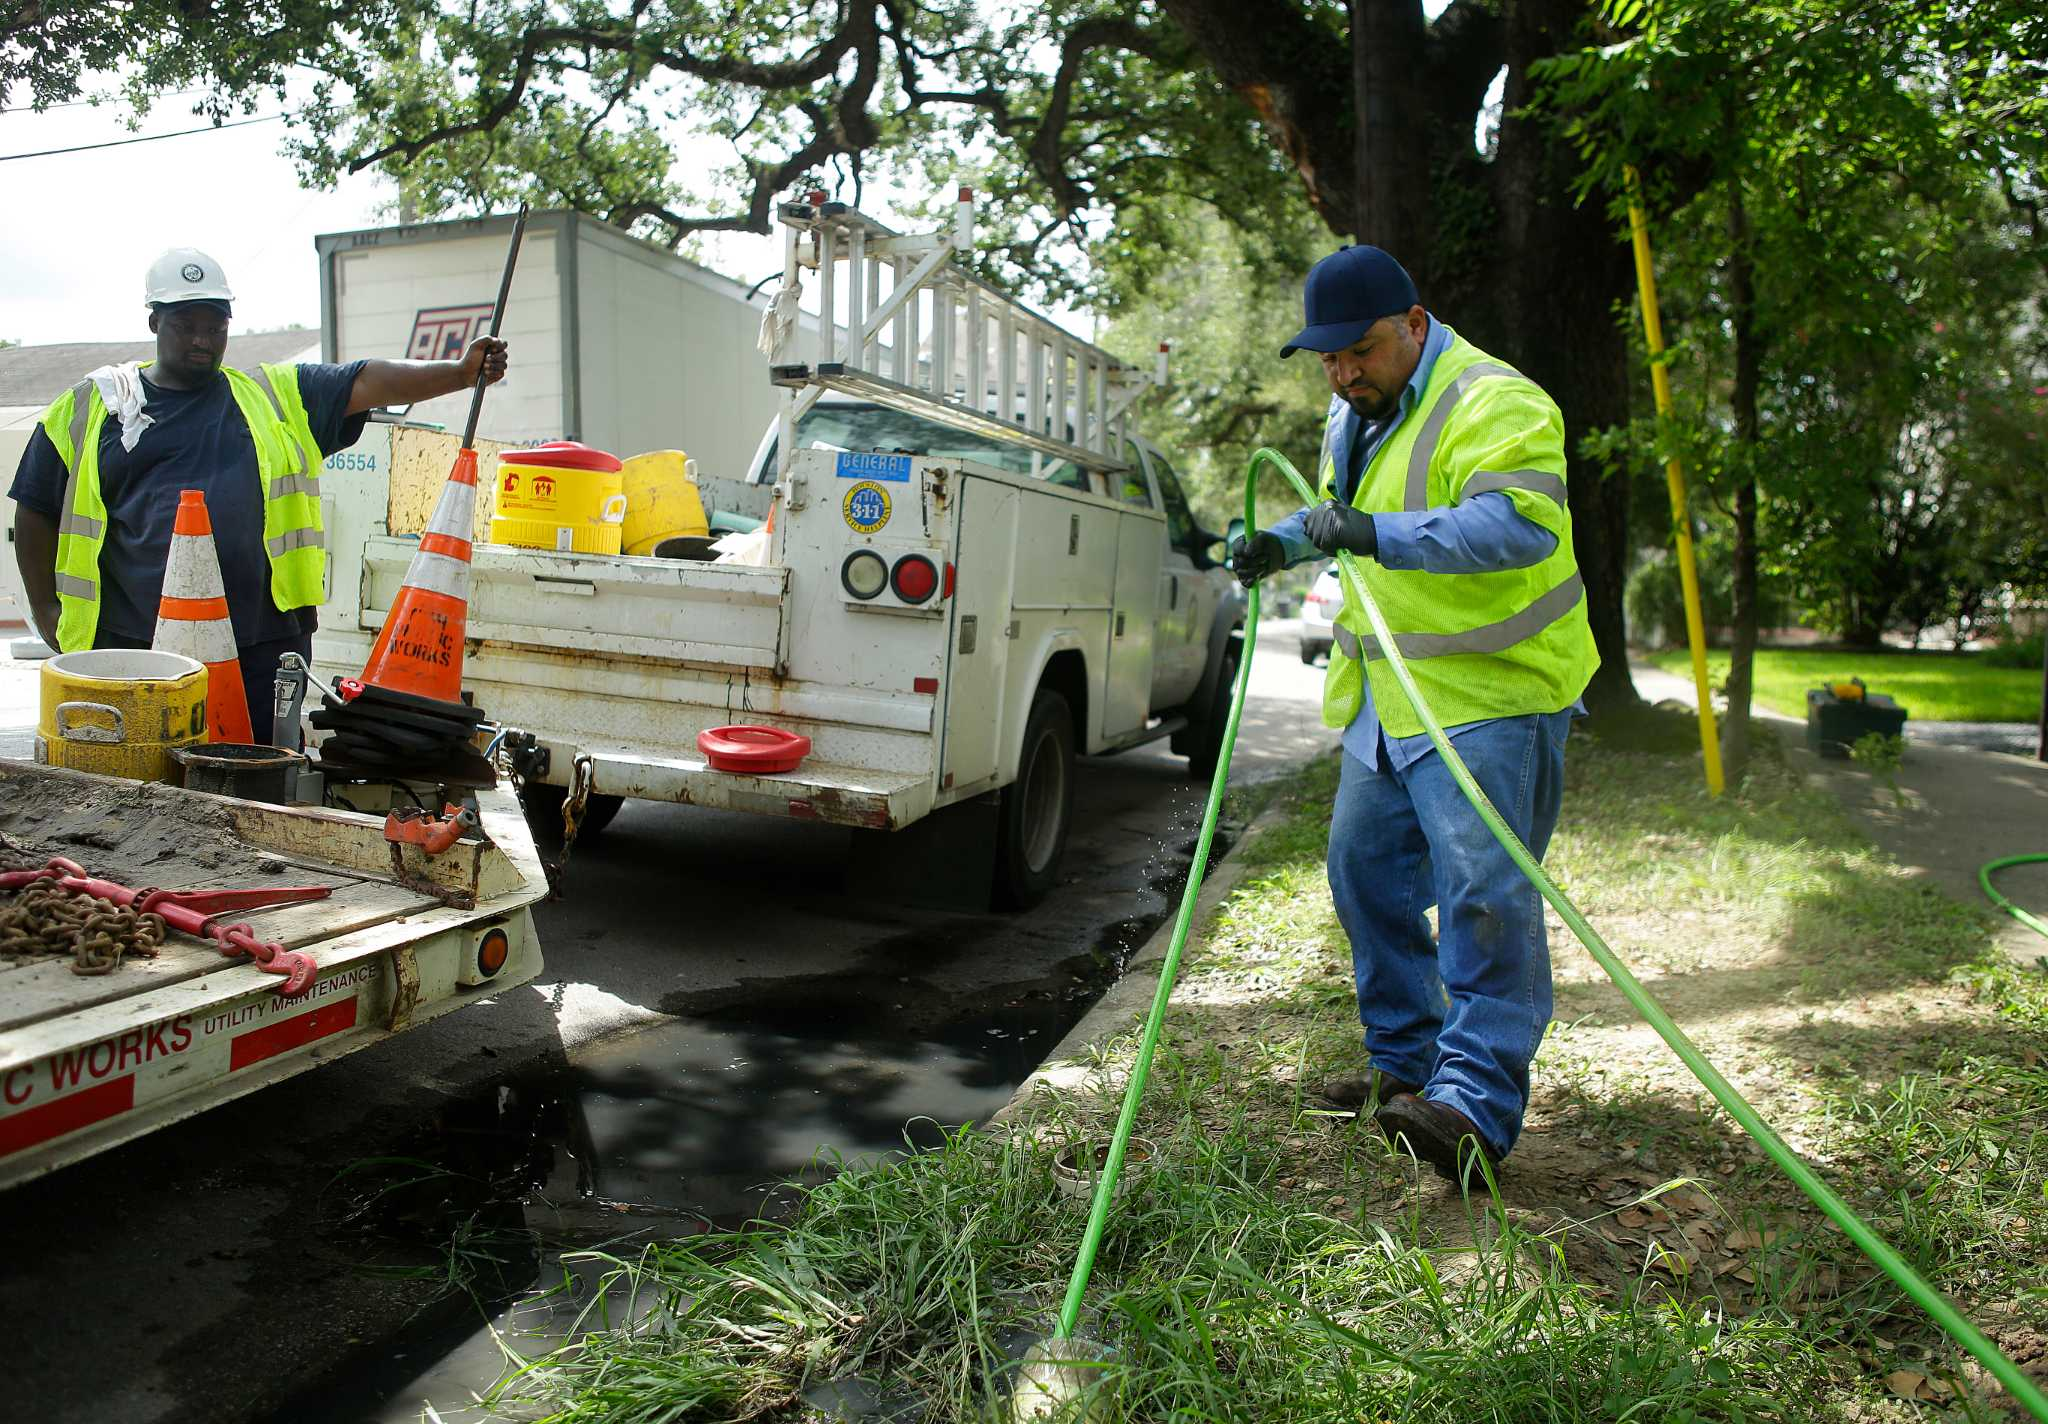 Sewer spills put city under epa scrutiny houston chronicle for Raw sewage under house